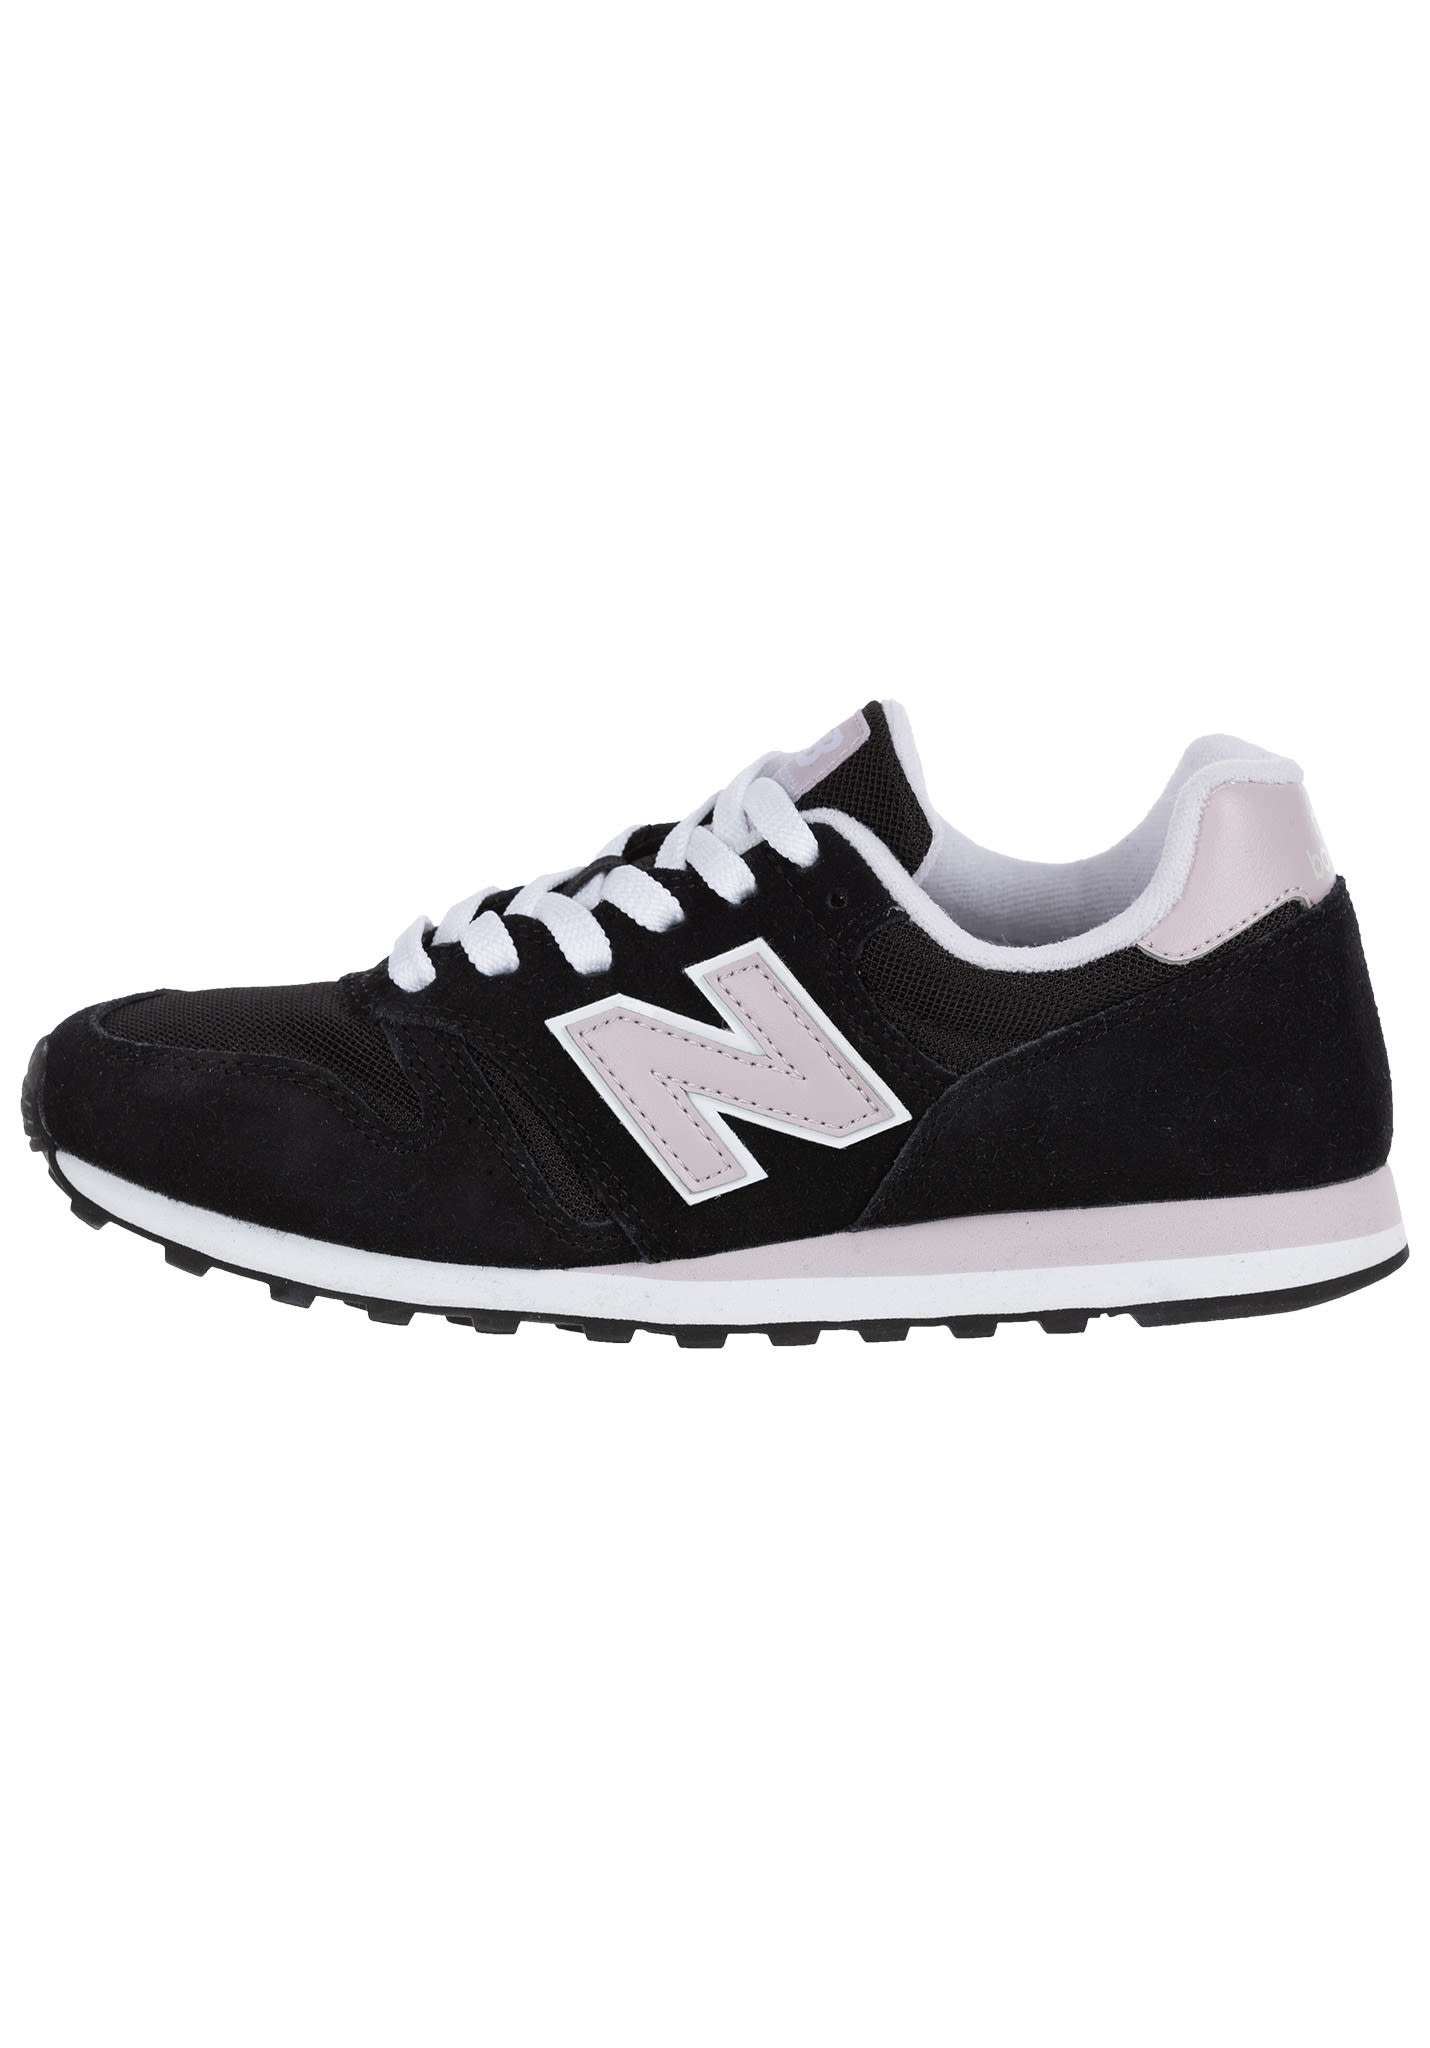 63cb9dca4c NEW BALANCE WL373 B - Sneakers for Women - Black - Planet Sports